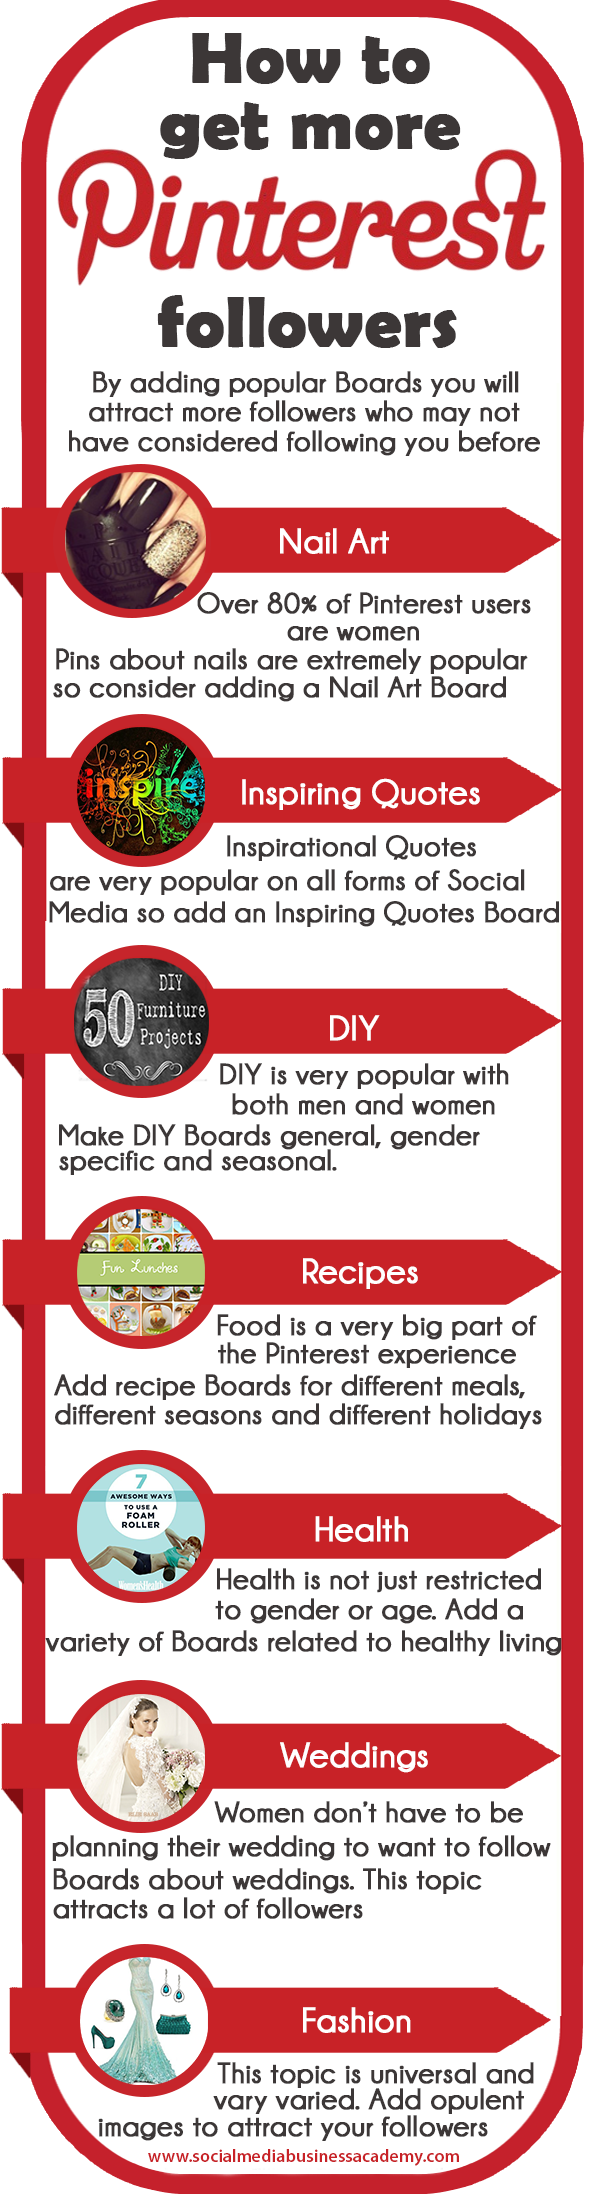 How to get more followers on Pinterest - https://plus.google.com/+ ...